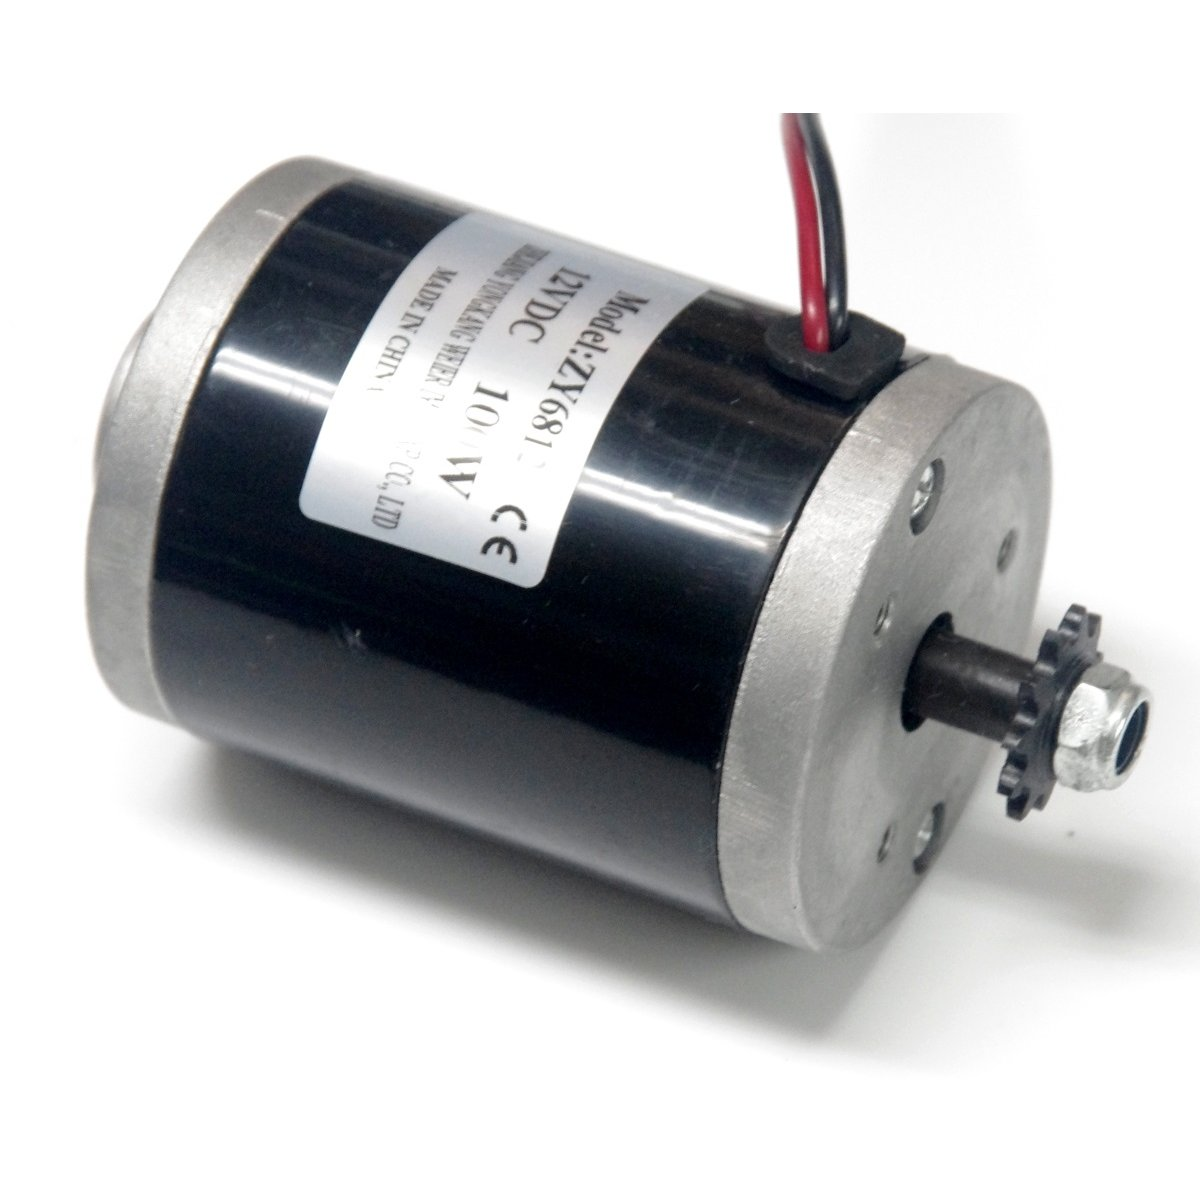 My6812 100w Dc Motor Robu In Indian Online Store Rc